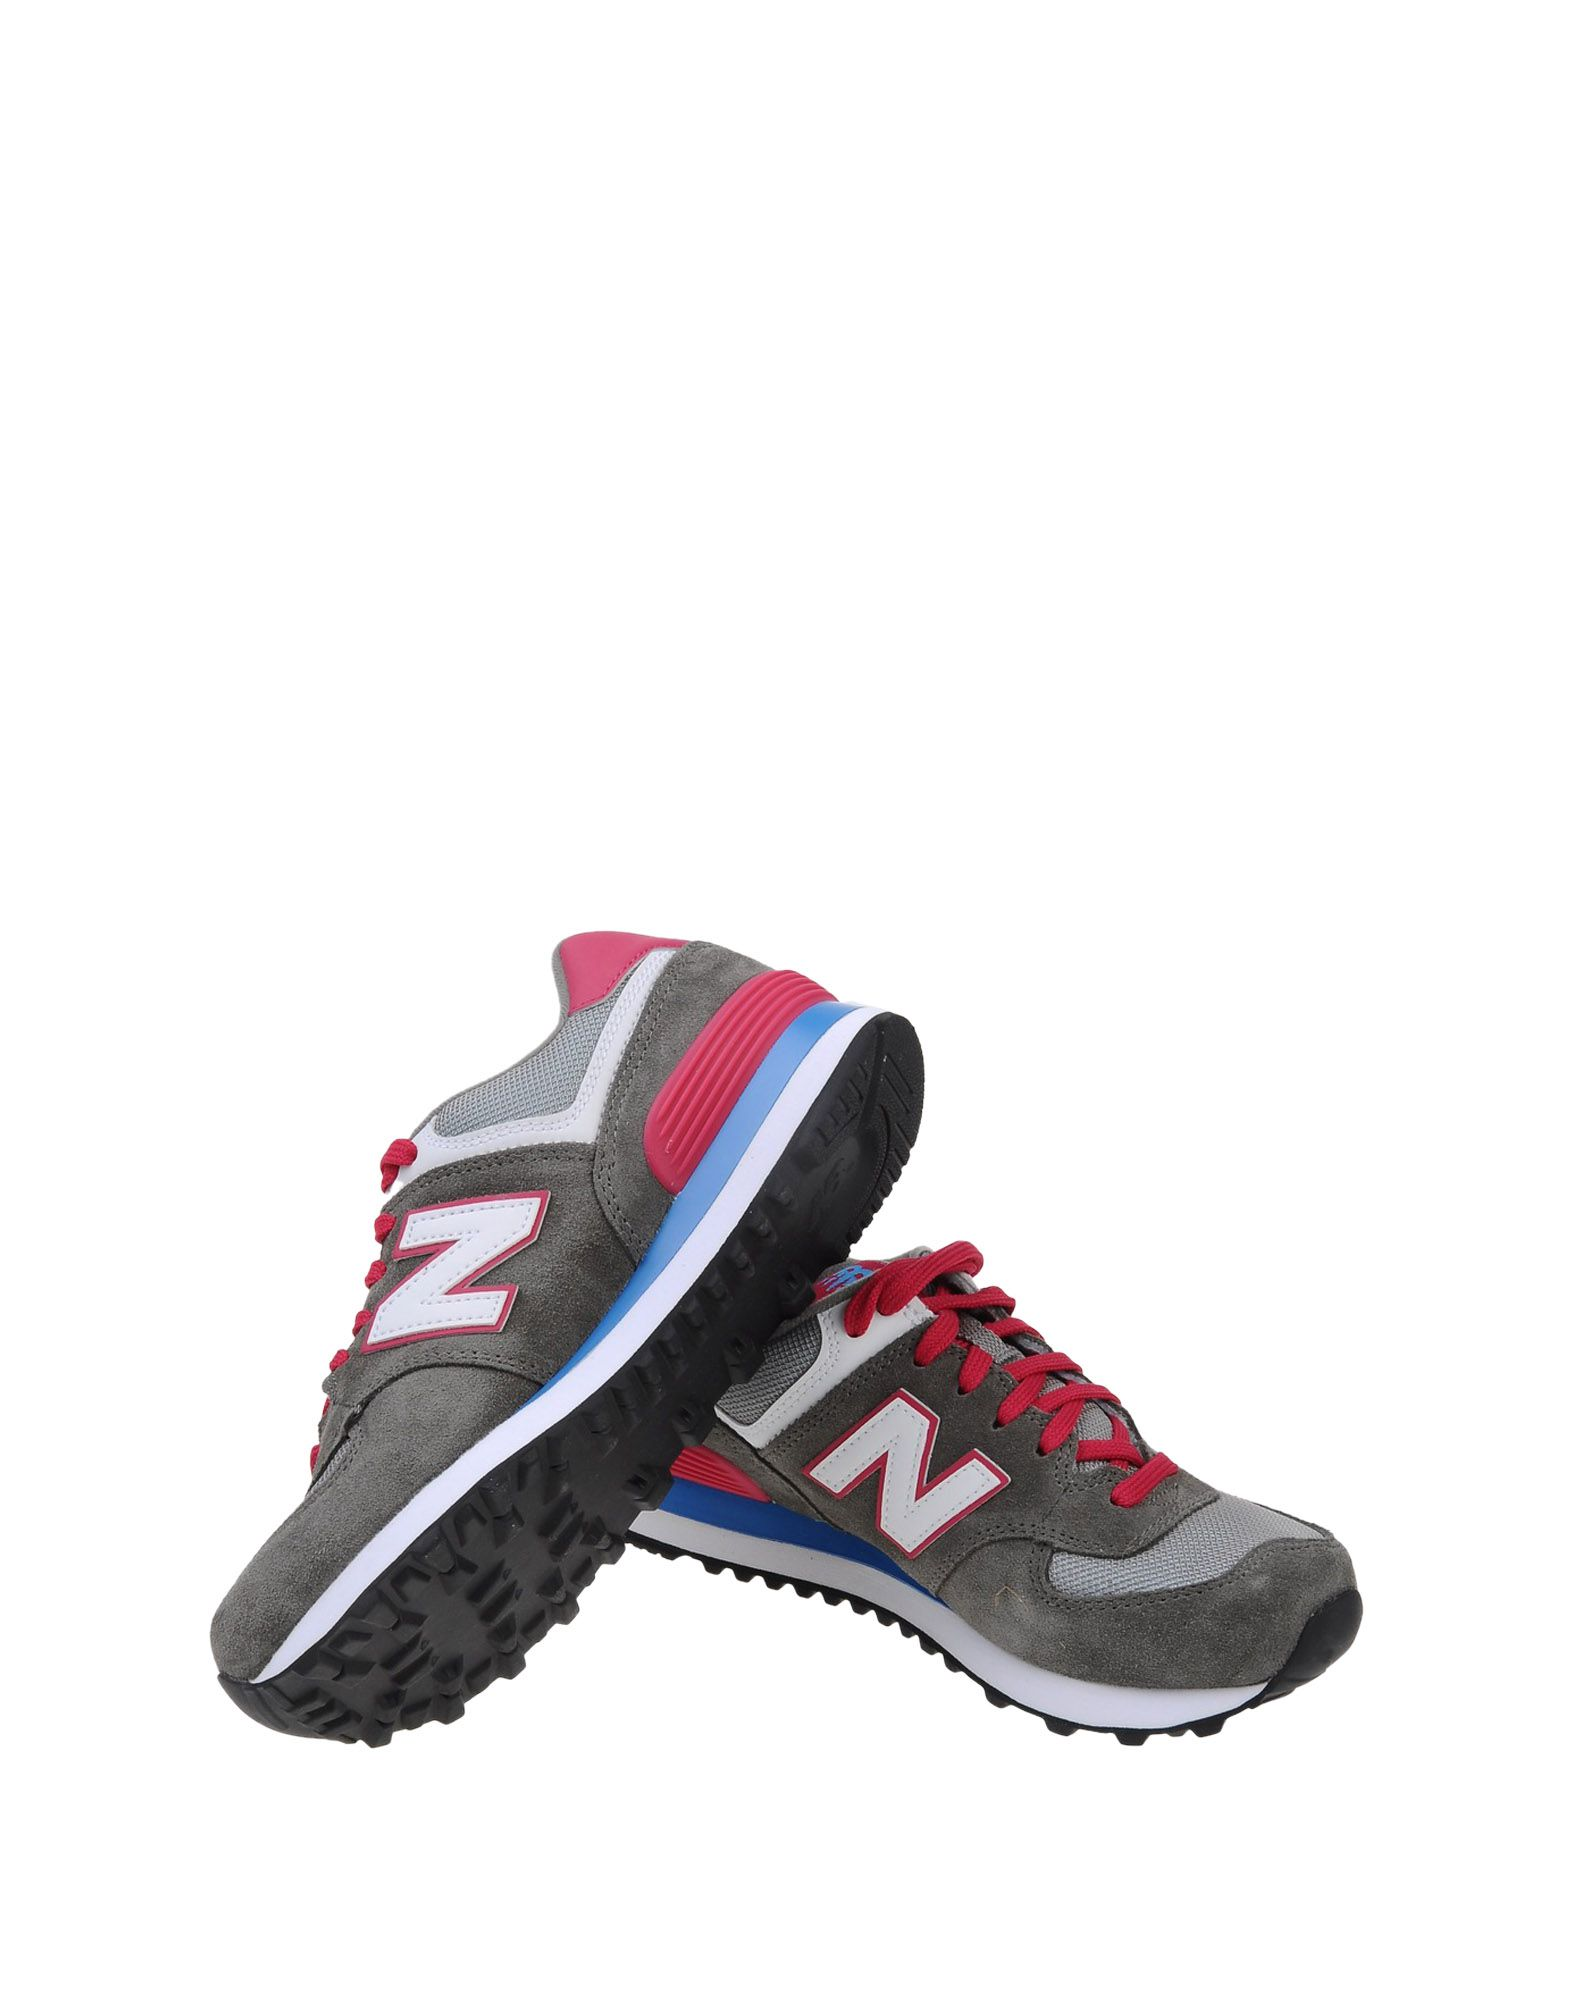 Sneakers New Balance 574 - Femme - Sneakers New Balance sur